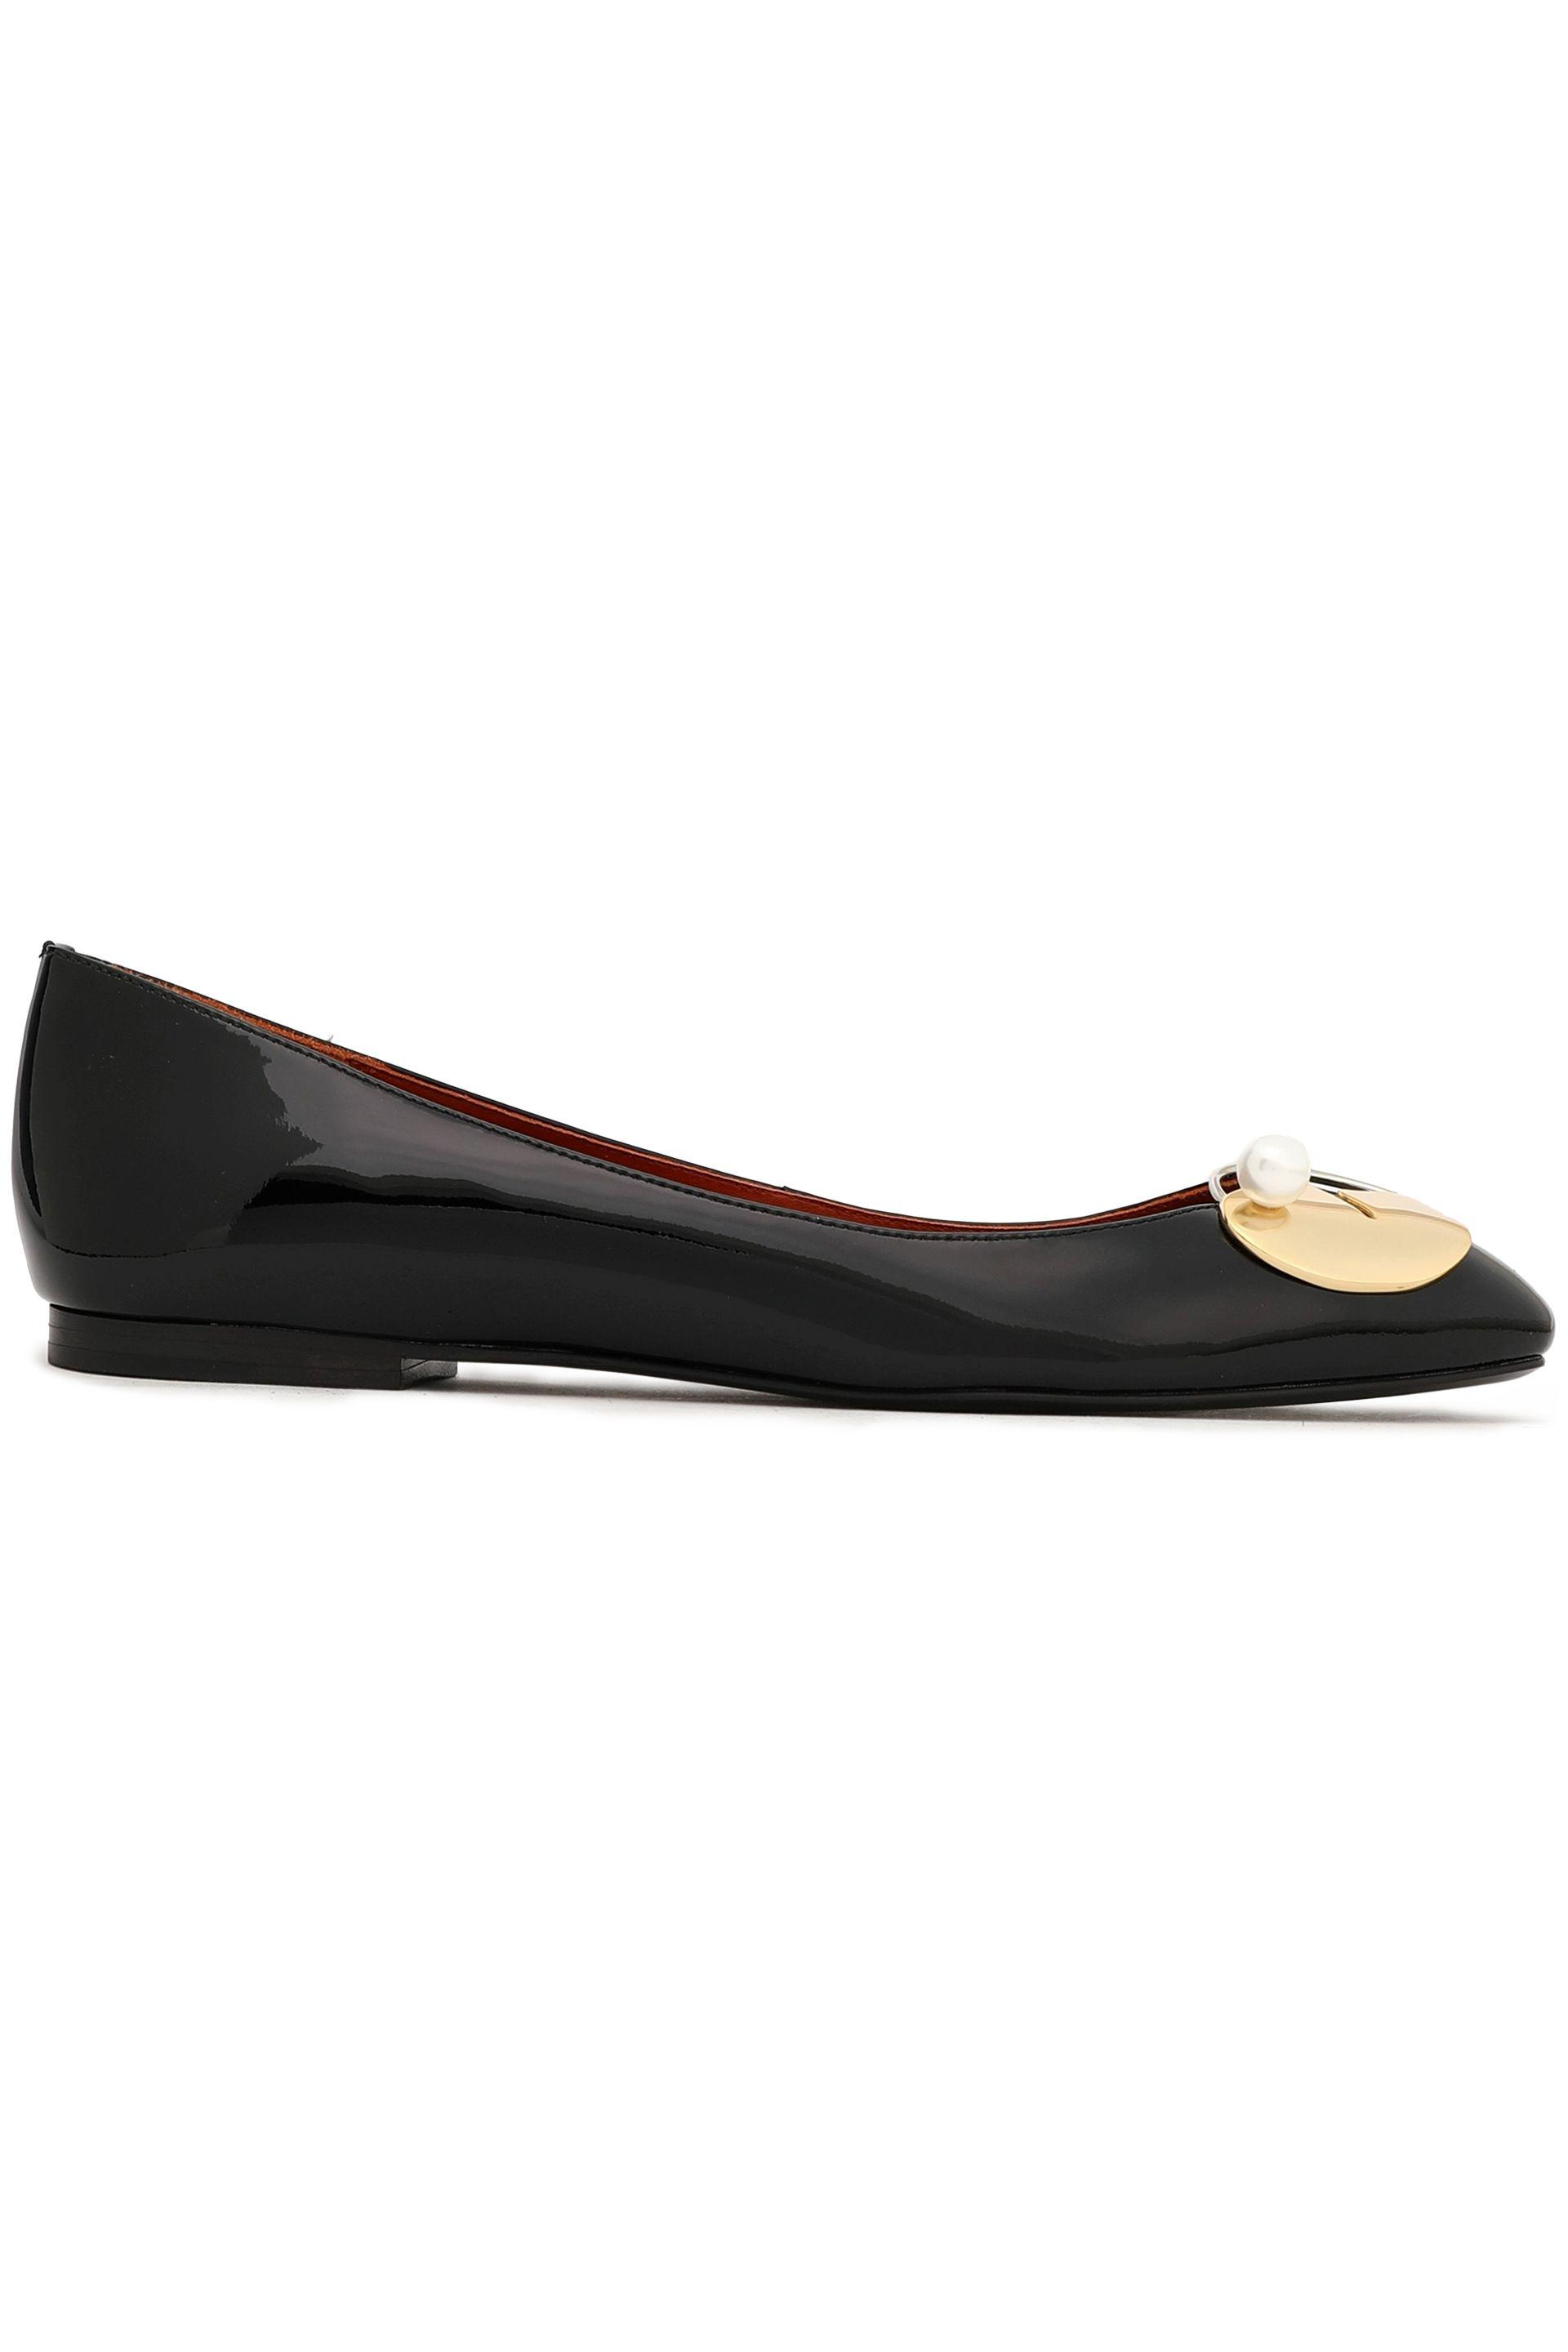 3.1 PHILLIP LIM Ballet flats manchester great sale cheap online cheapest price online buy cheap Manchester cheap sale exclusive buy cheap comfortable ynaL4hyt